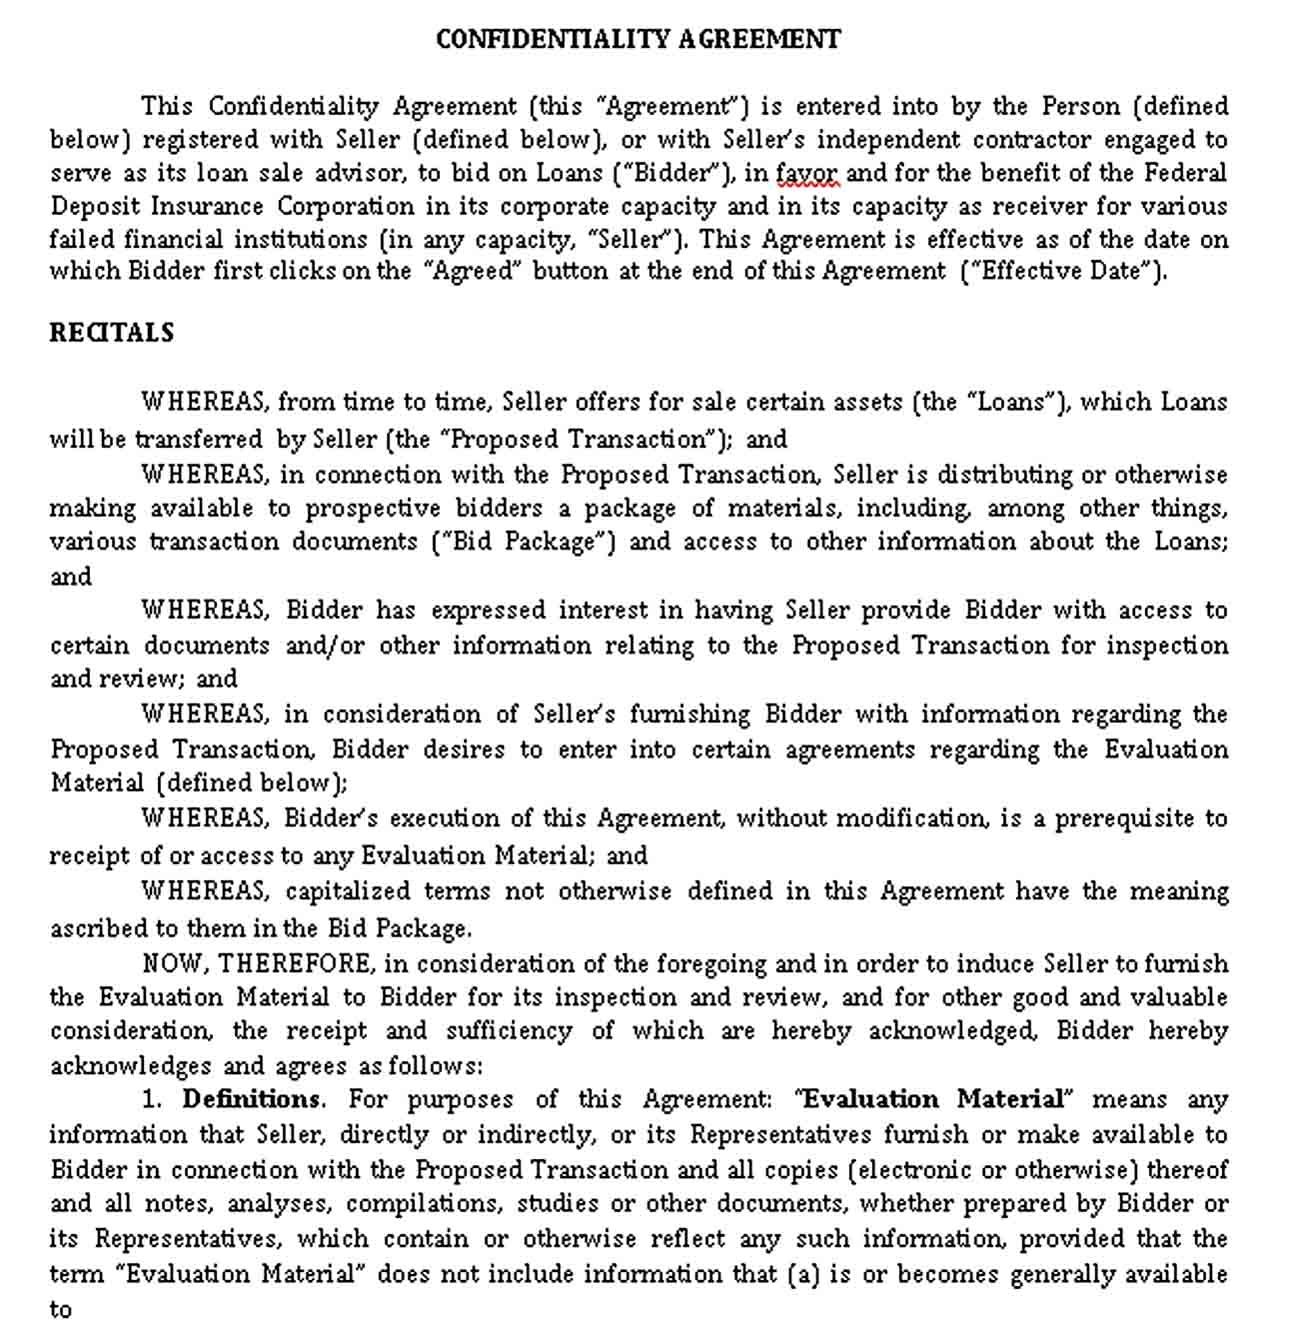 Financial Confidentiality Agreement Template In 2020 Financial Federal Deposit Insurance Corporation Agreement